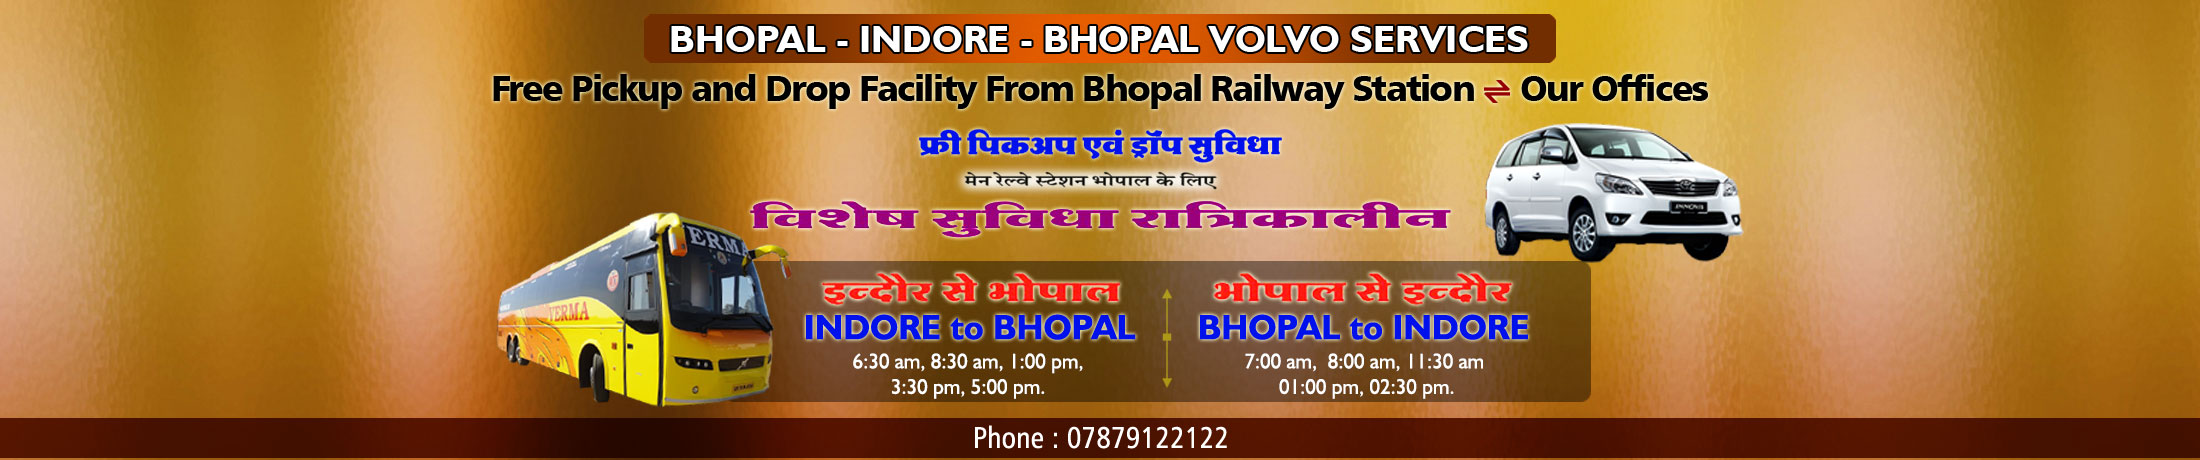 Verma Travels - Bhopal to Indore and Indore to Bhopal Volvo Bus Services